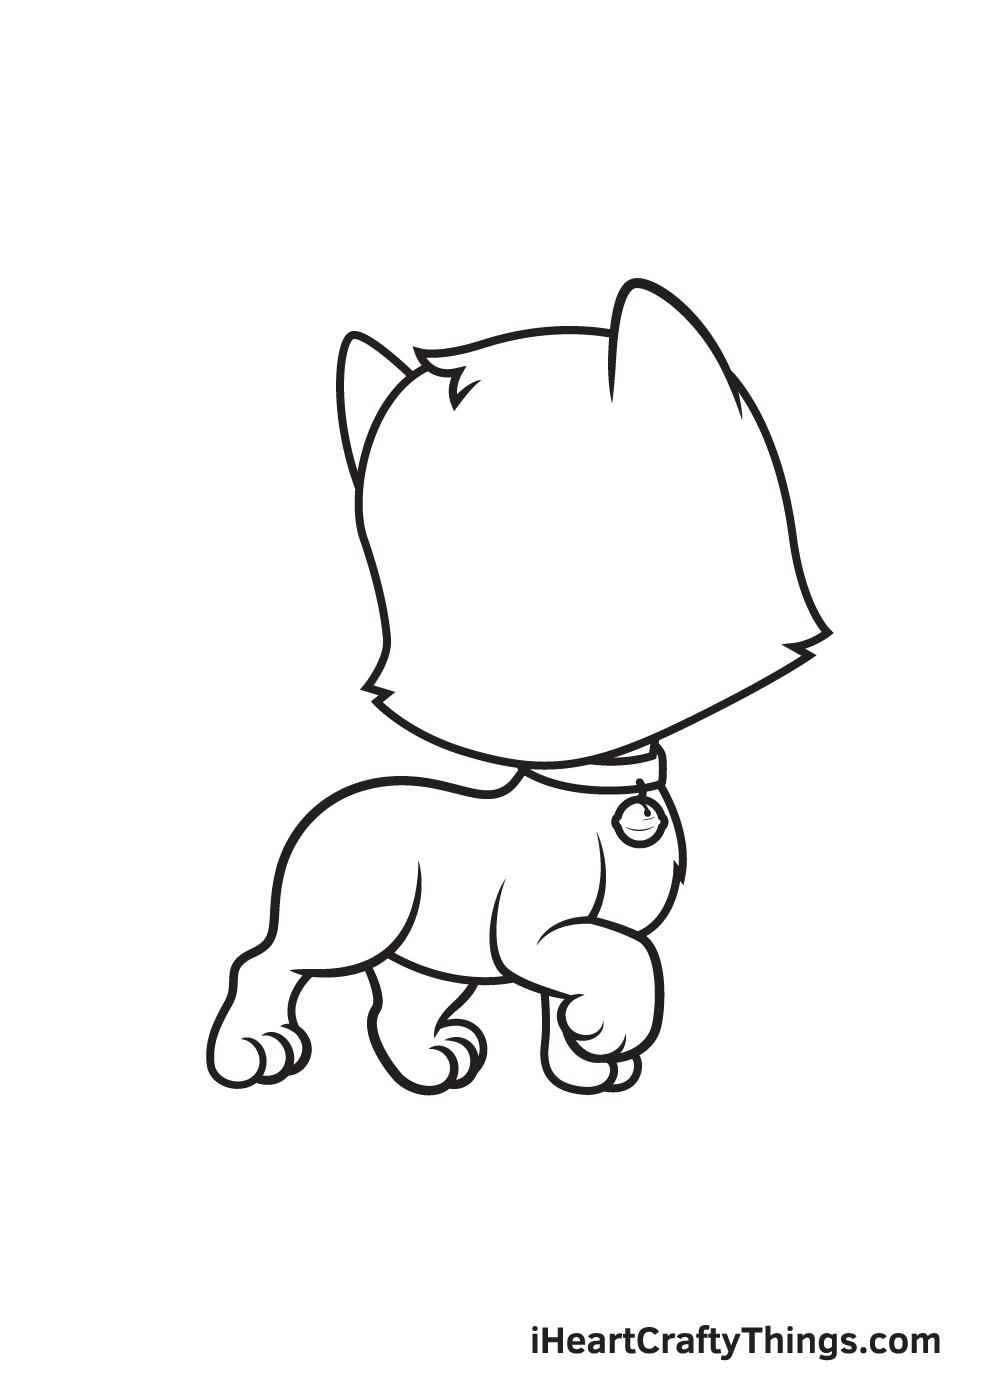 cat drawing – step 7